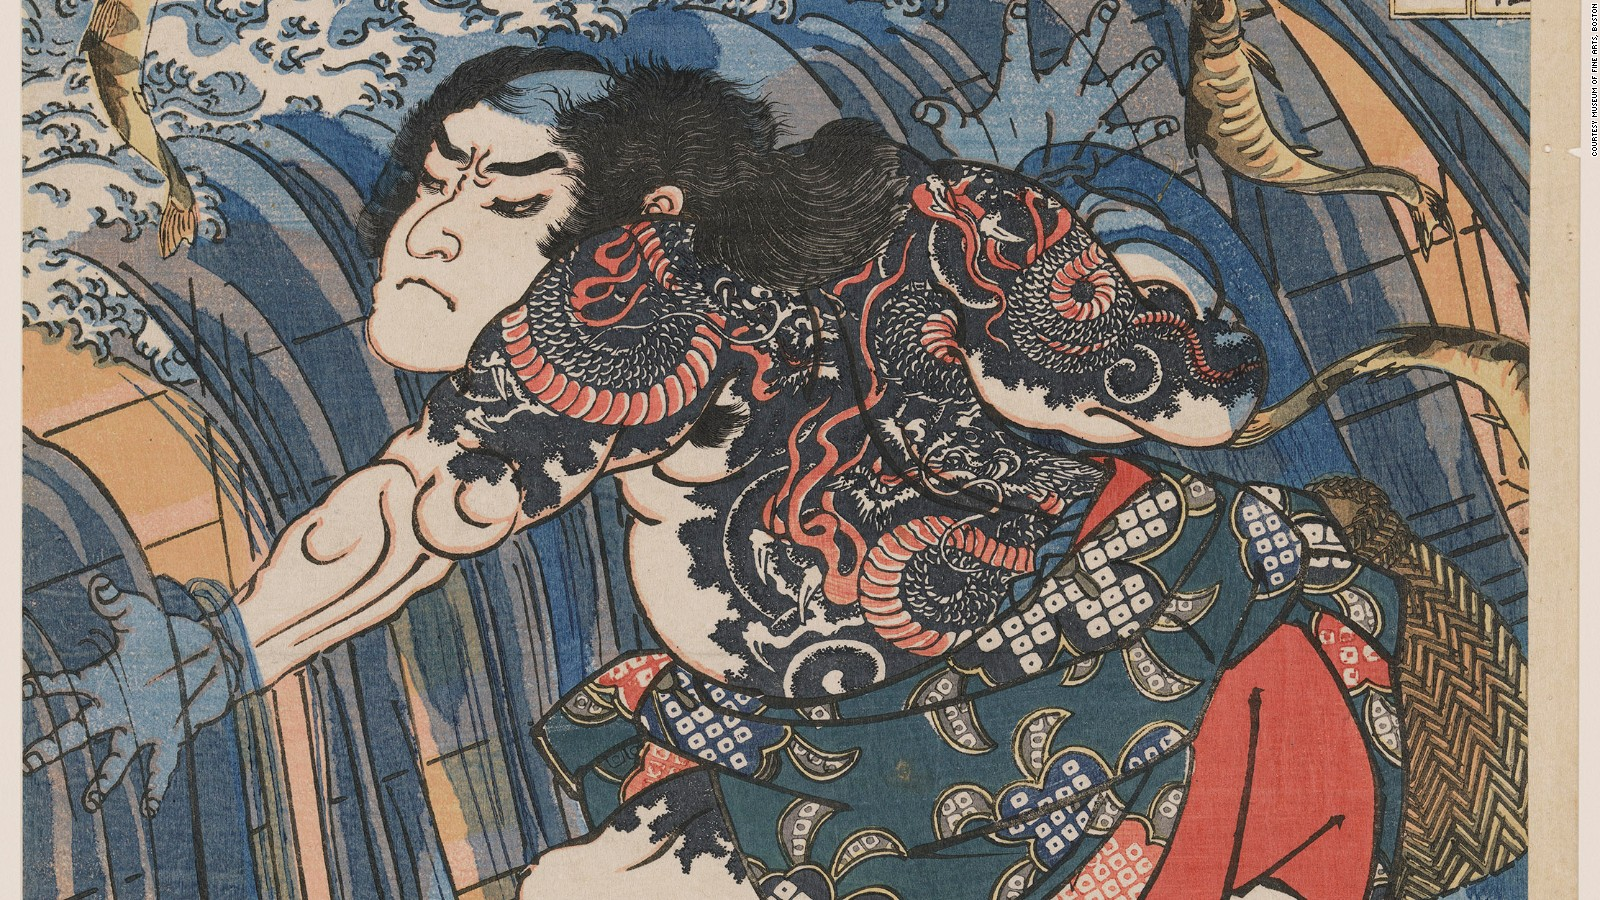 Tebori Tattoos Can Japans Hand Carved Tradition Survive